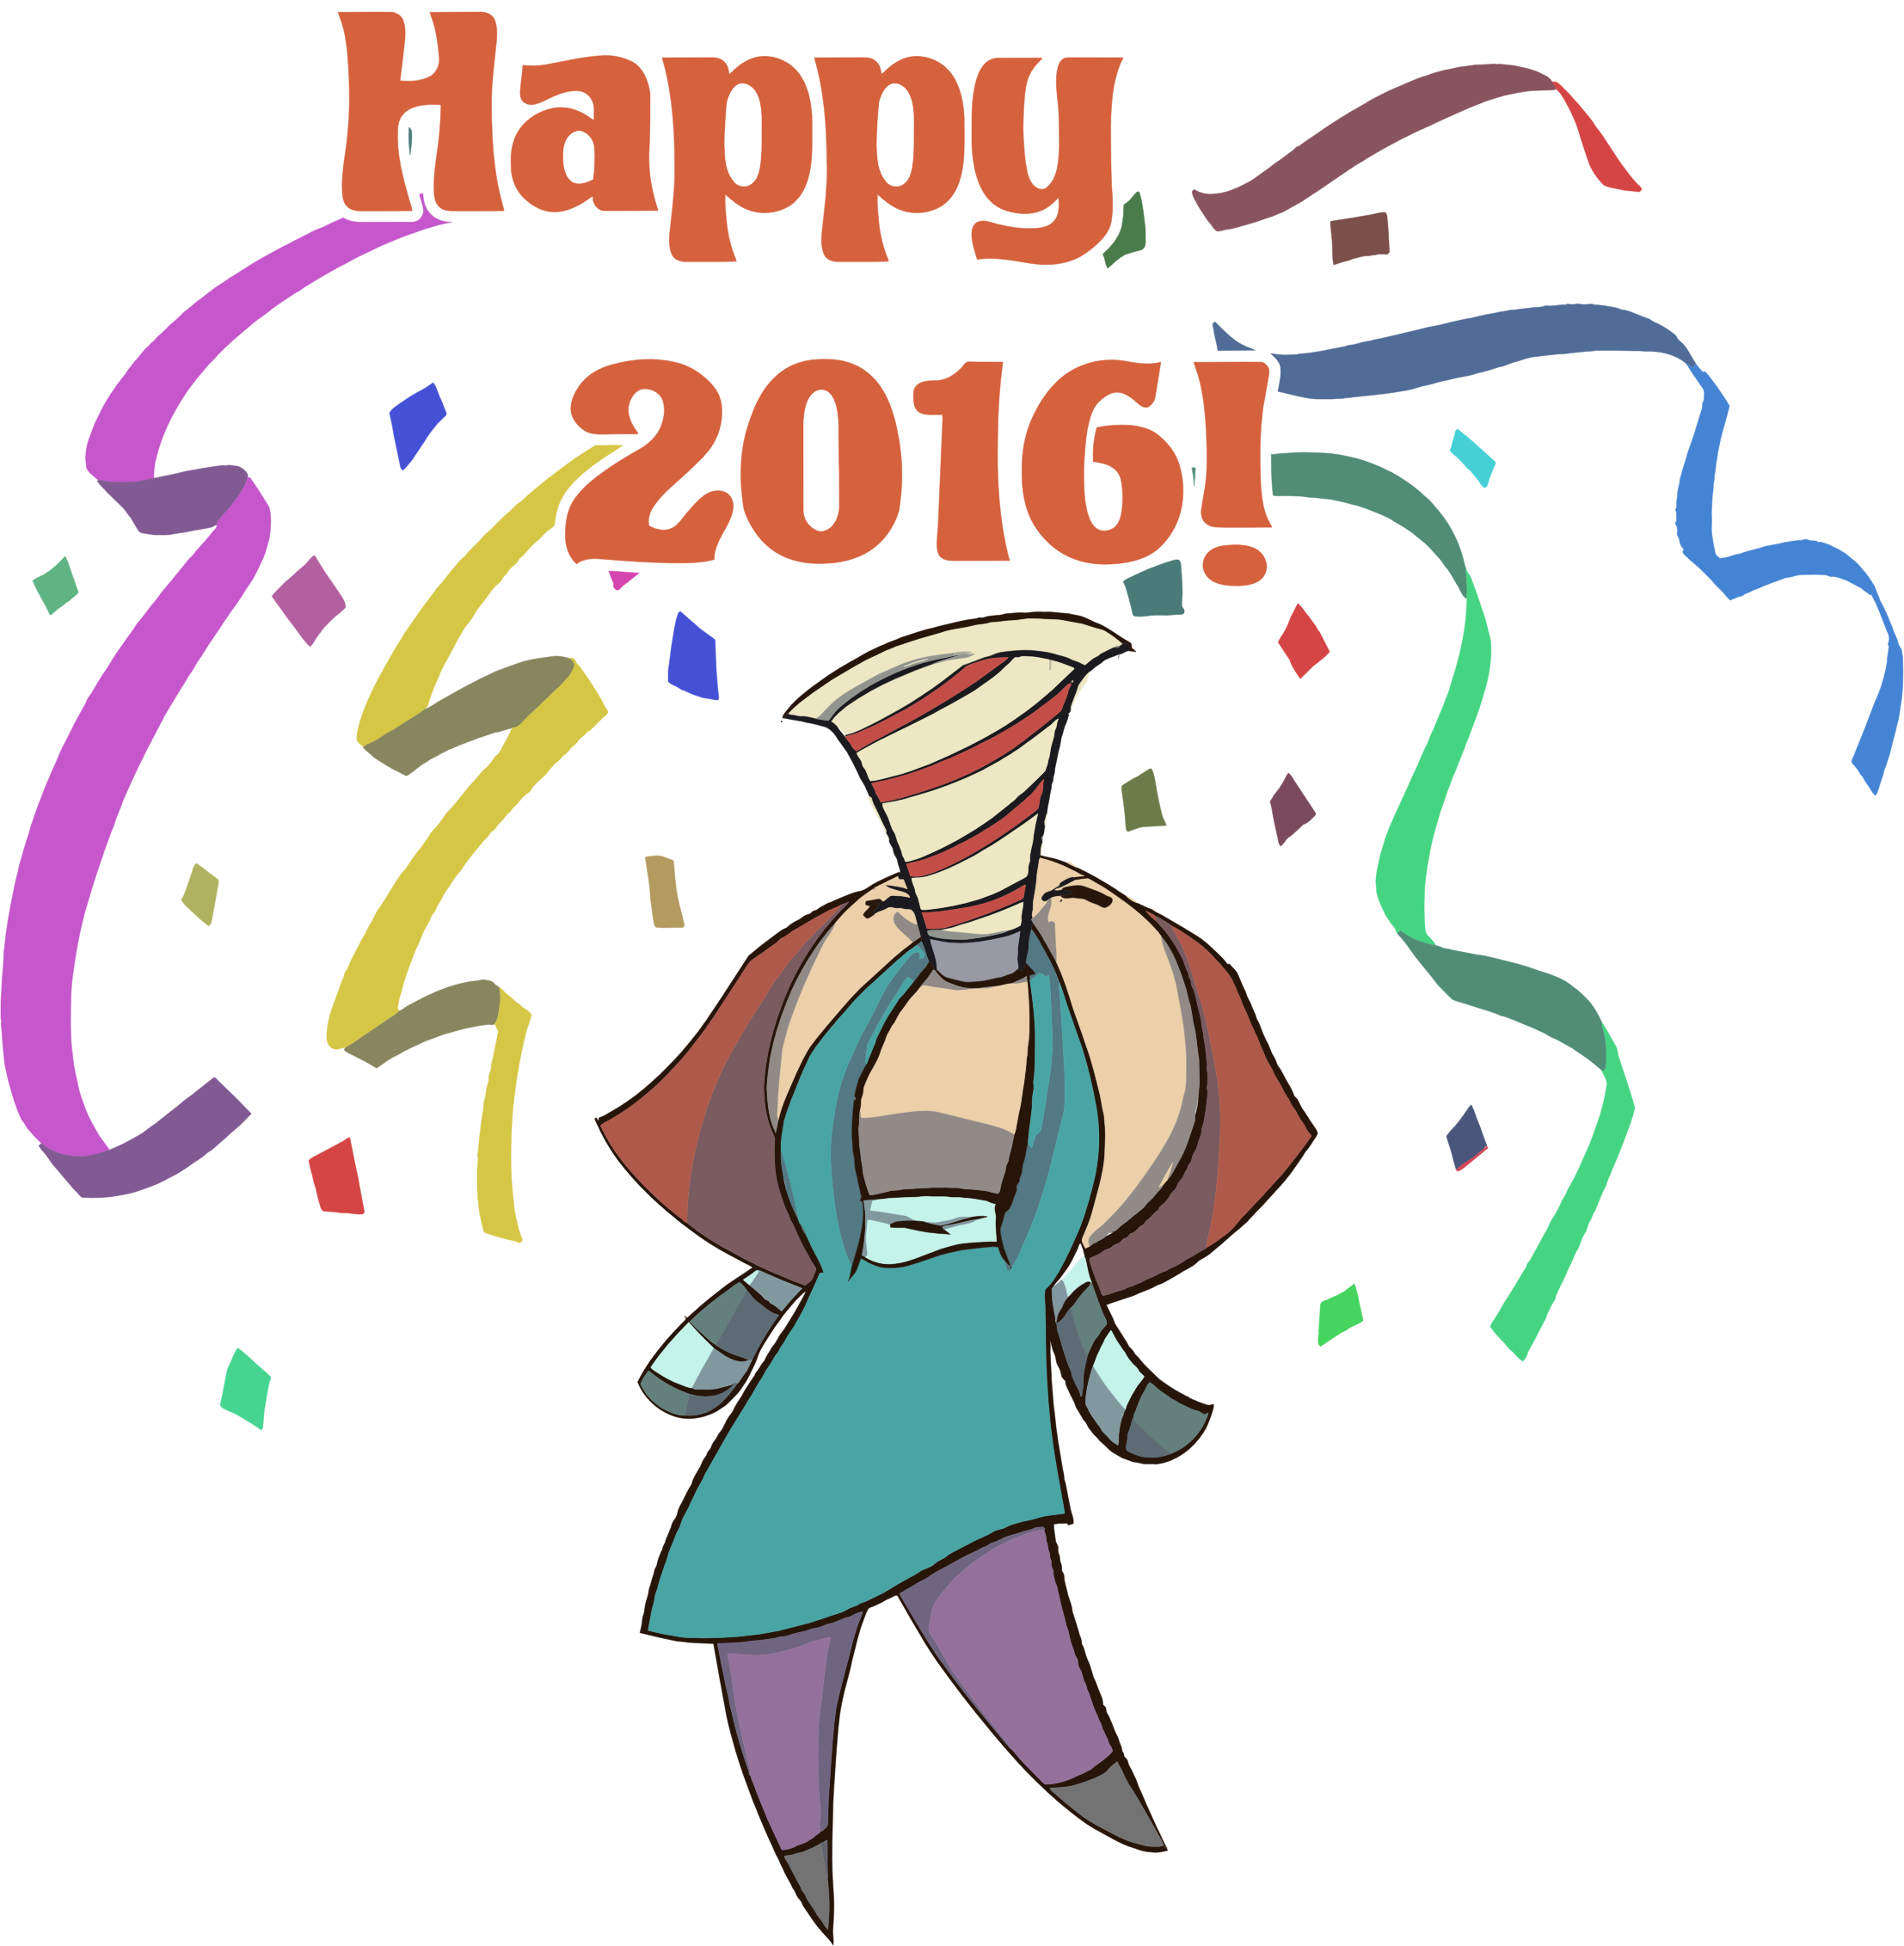 Happy 2016 Woman by GDJ